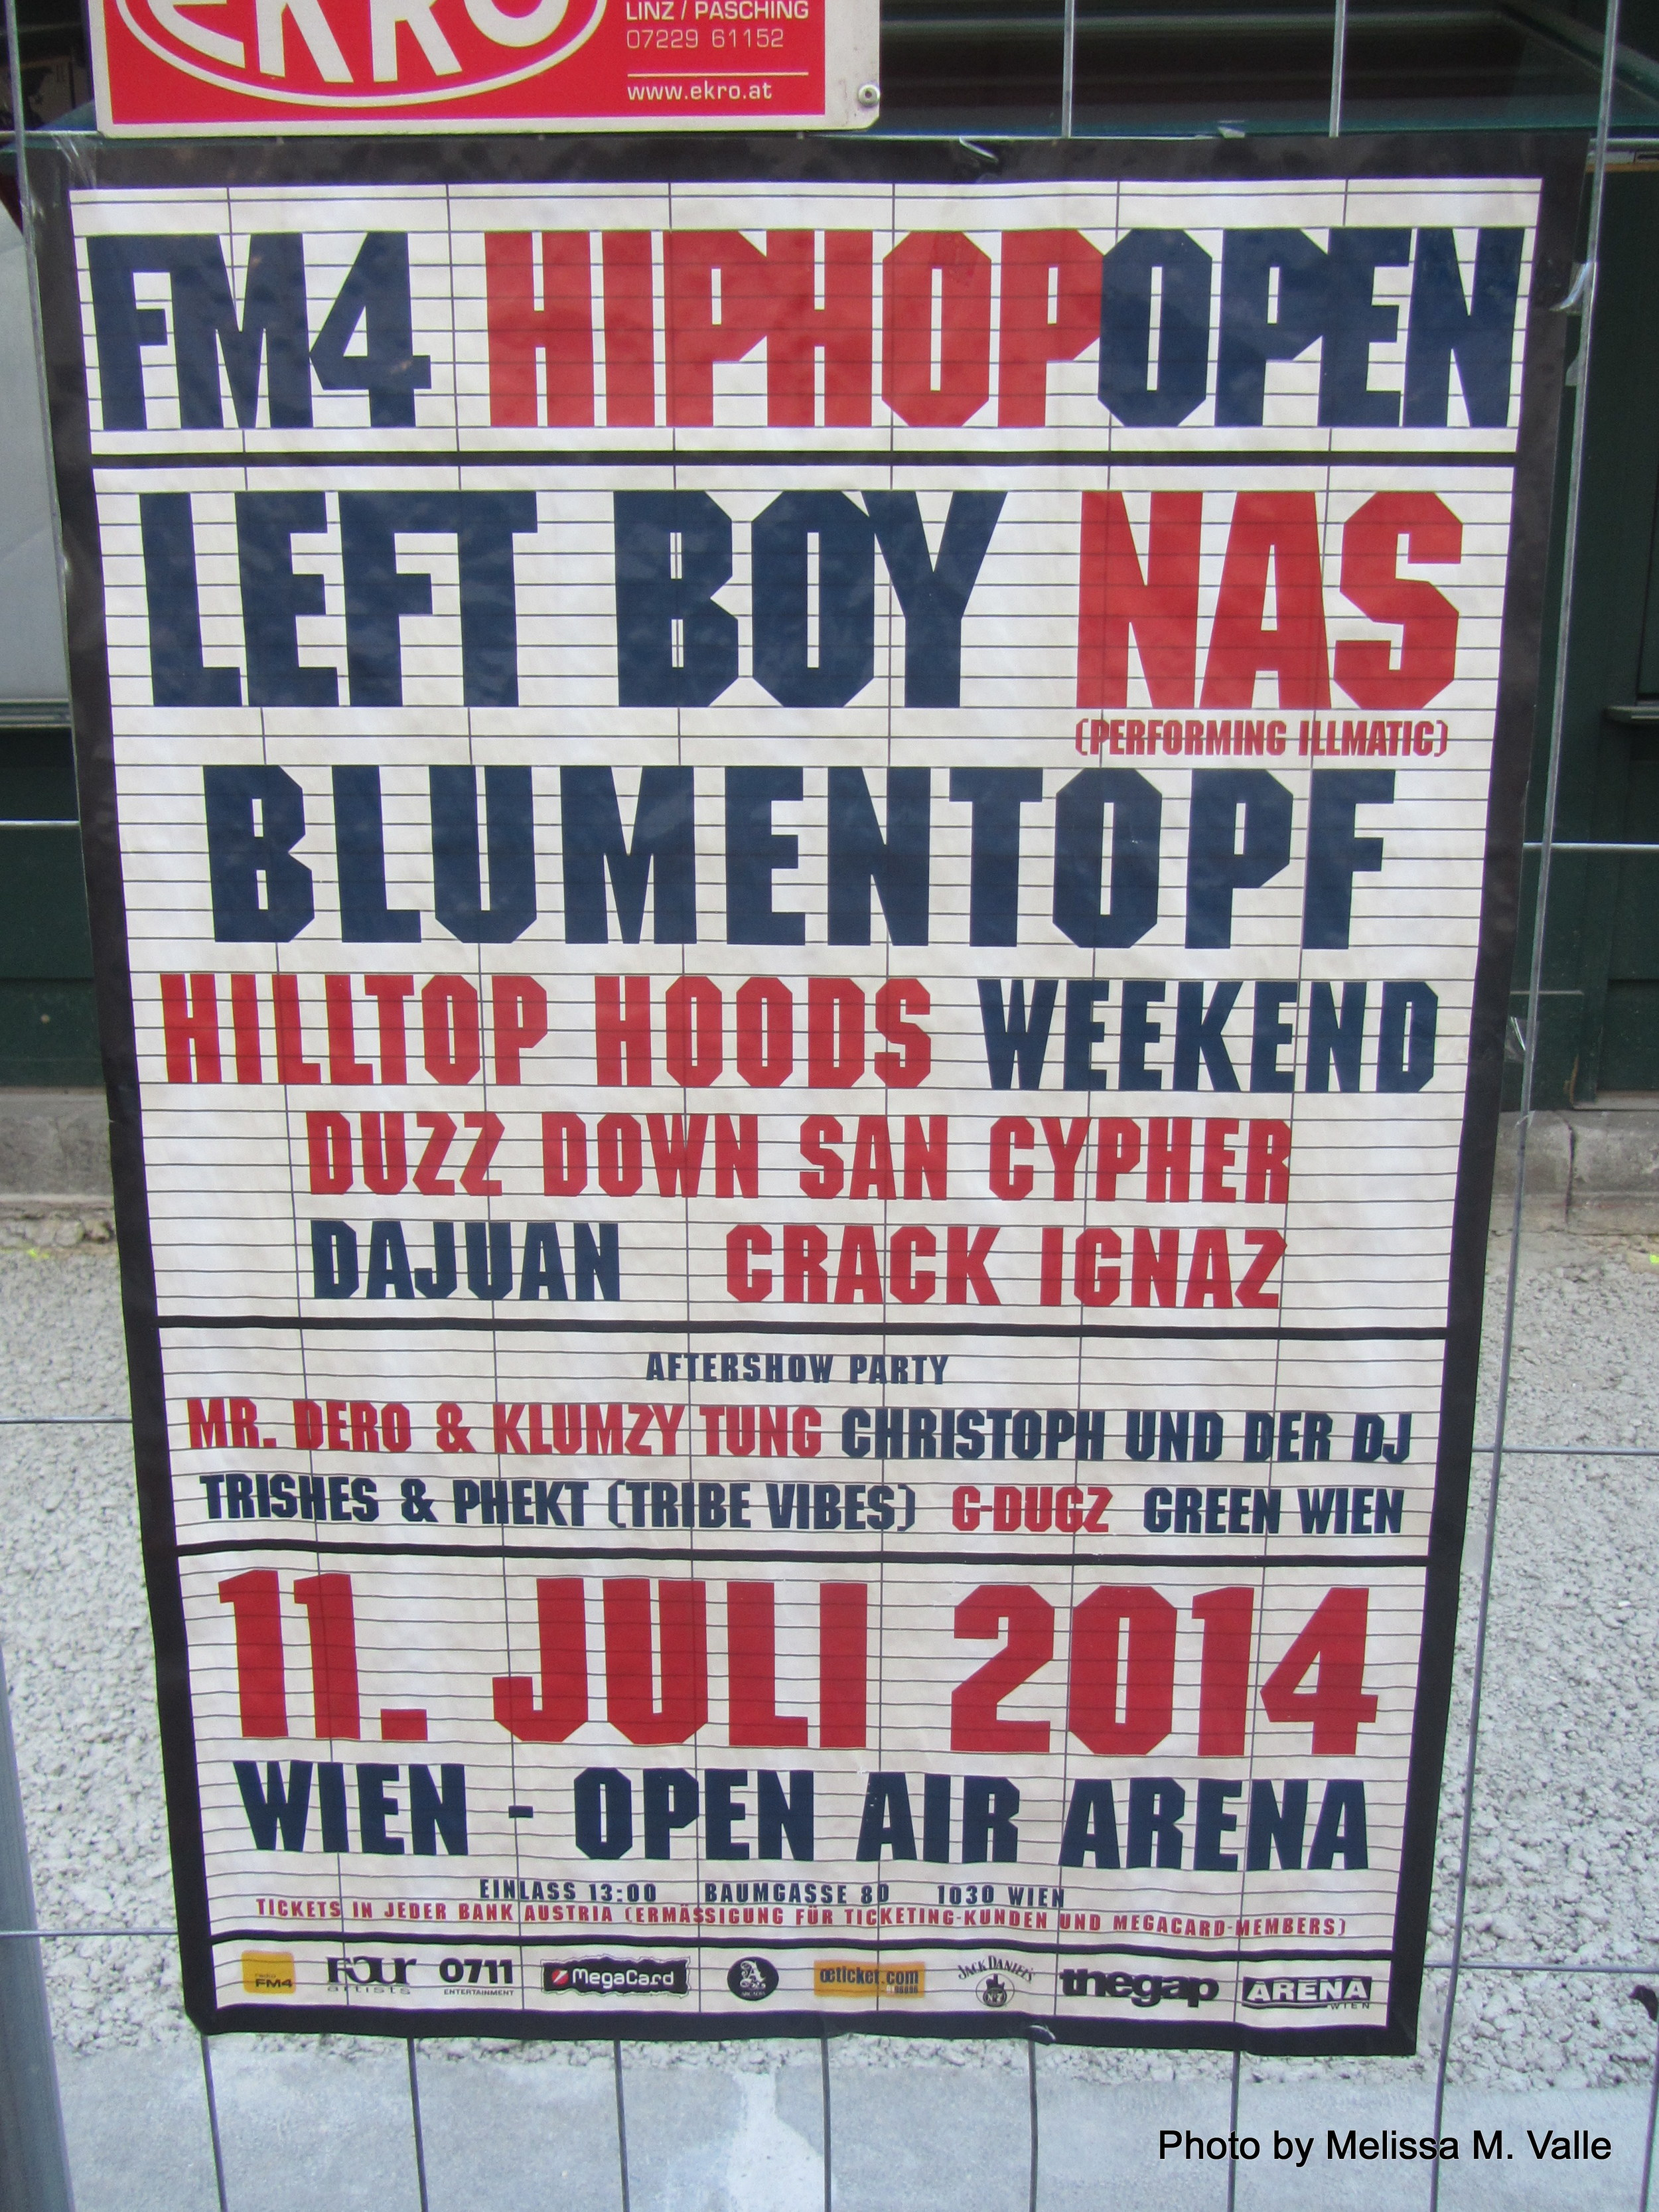 I feel that if Nas and I saw one another in Vienna we would've fallen madly in love so I was deeply saddened to be missing this show by but a few days. #OneDayBooOneLove